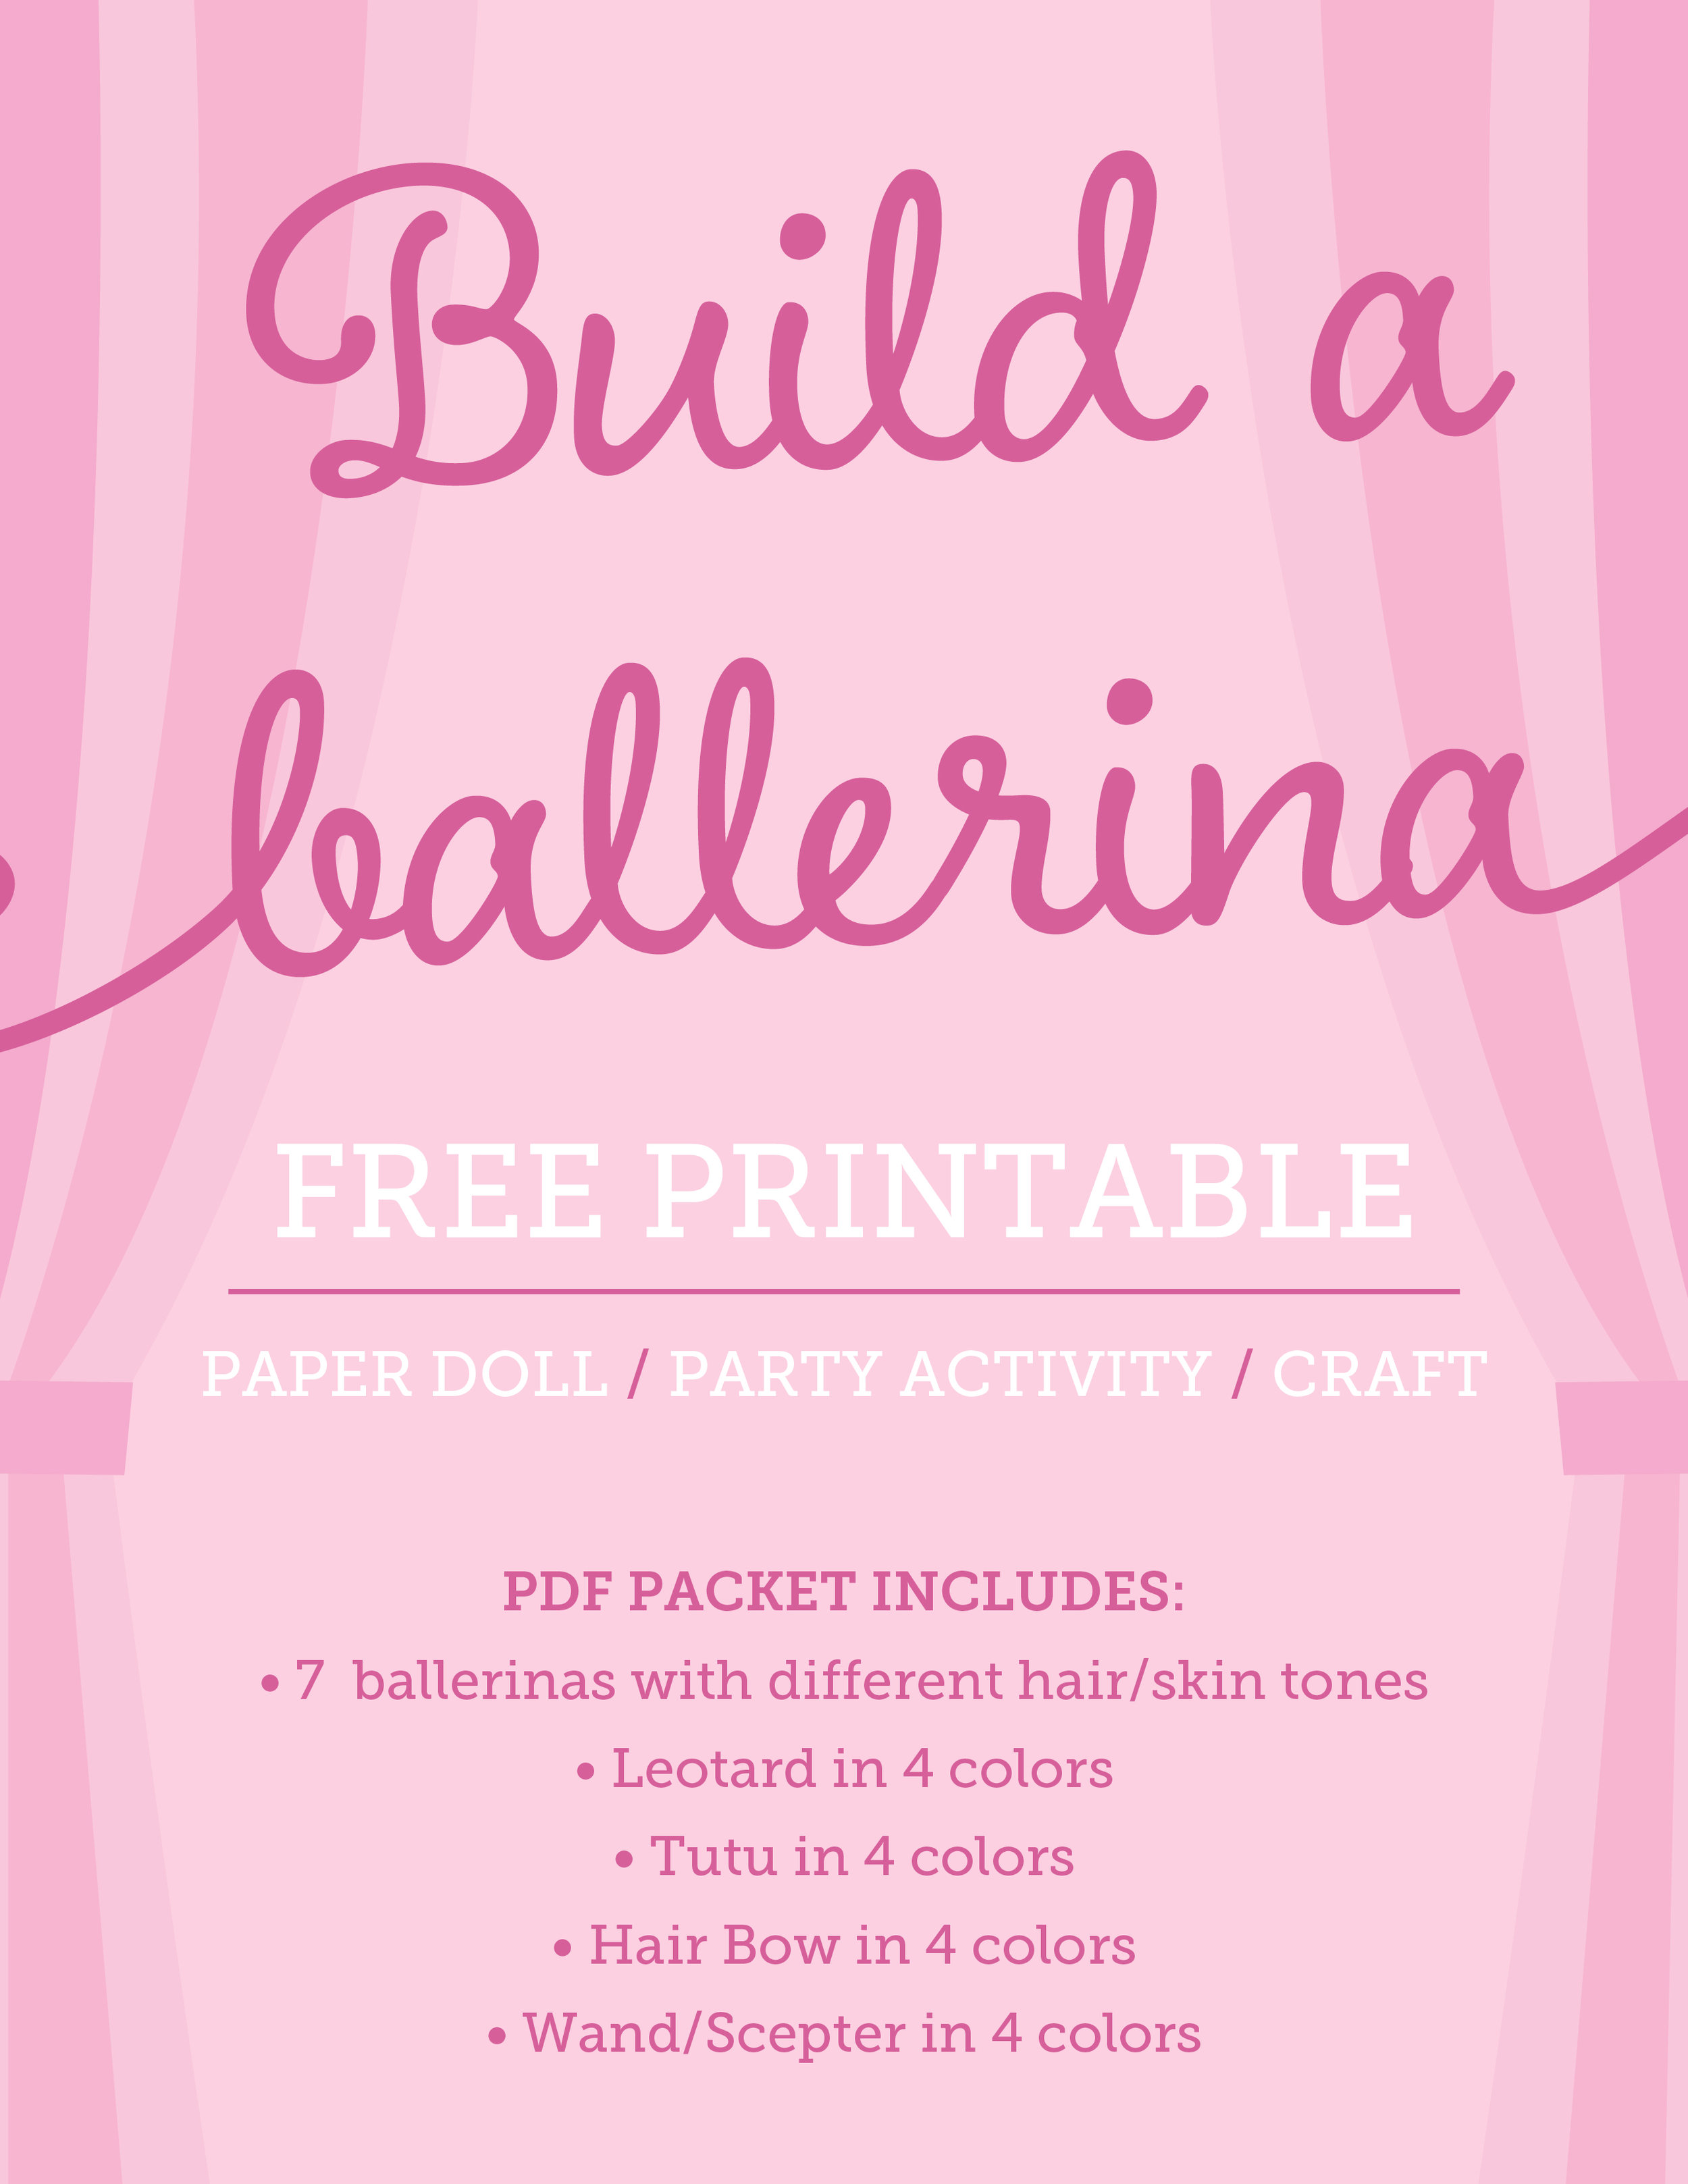 Build-a-BallerinaPages-01.jpg